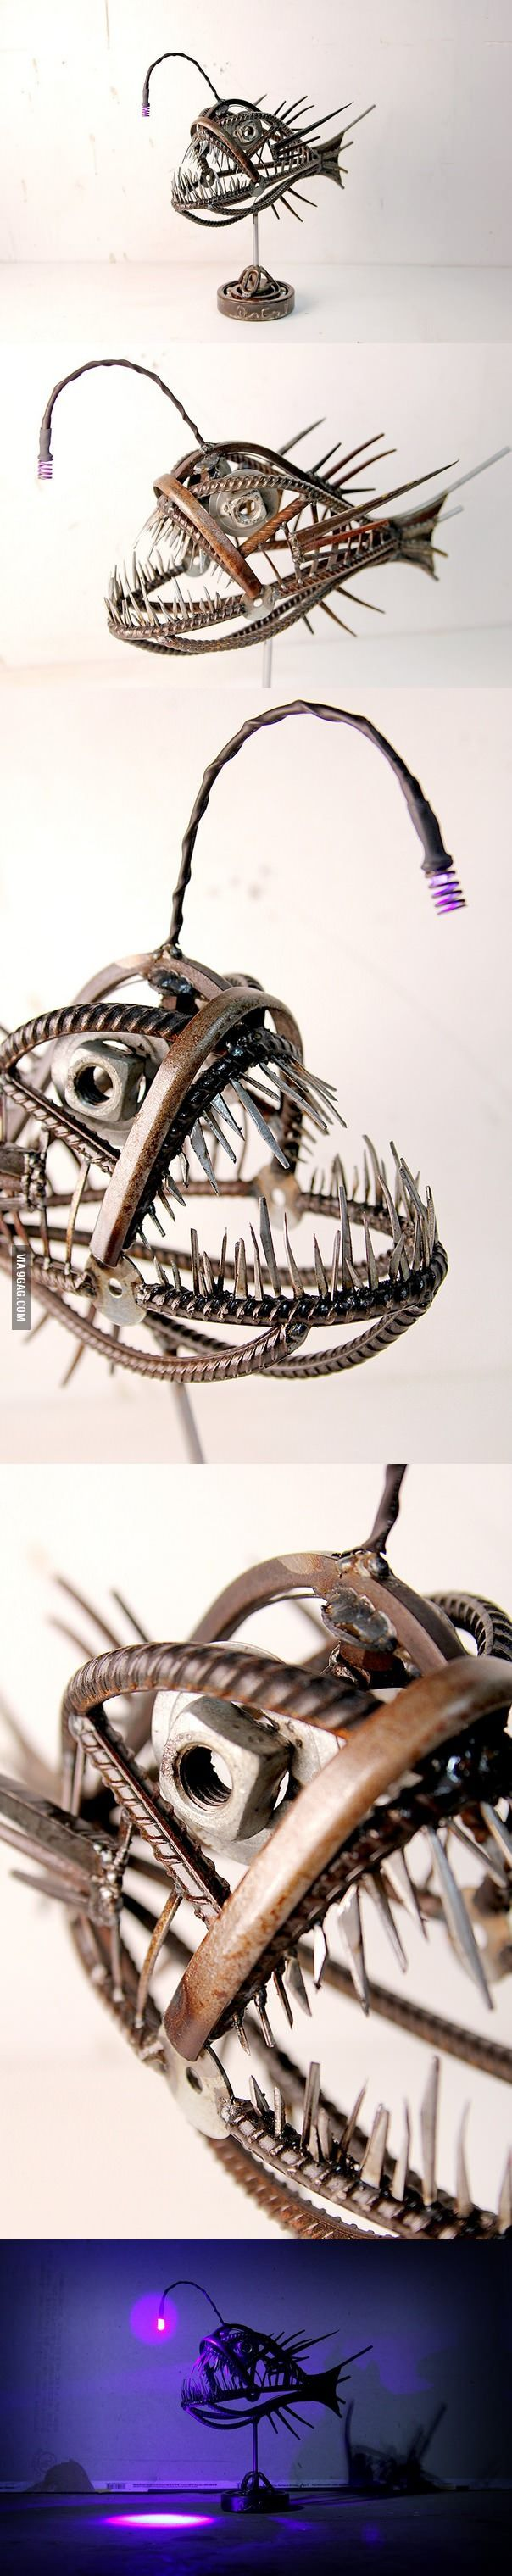 Angler Fish Metal Sculpture not art i would hope to own but i appreciate it